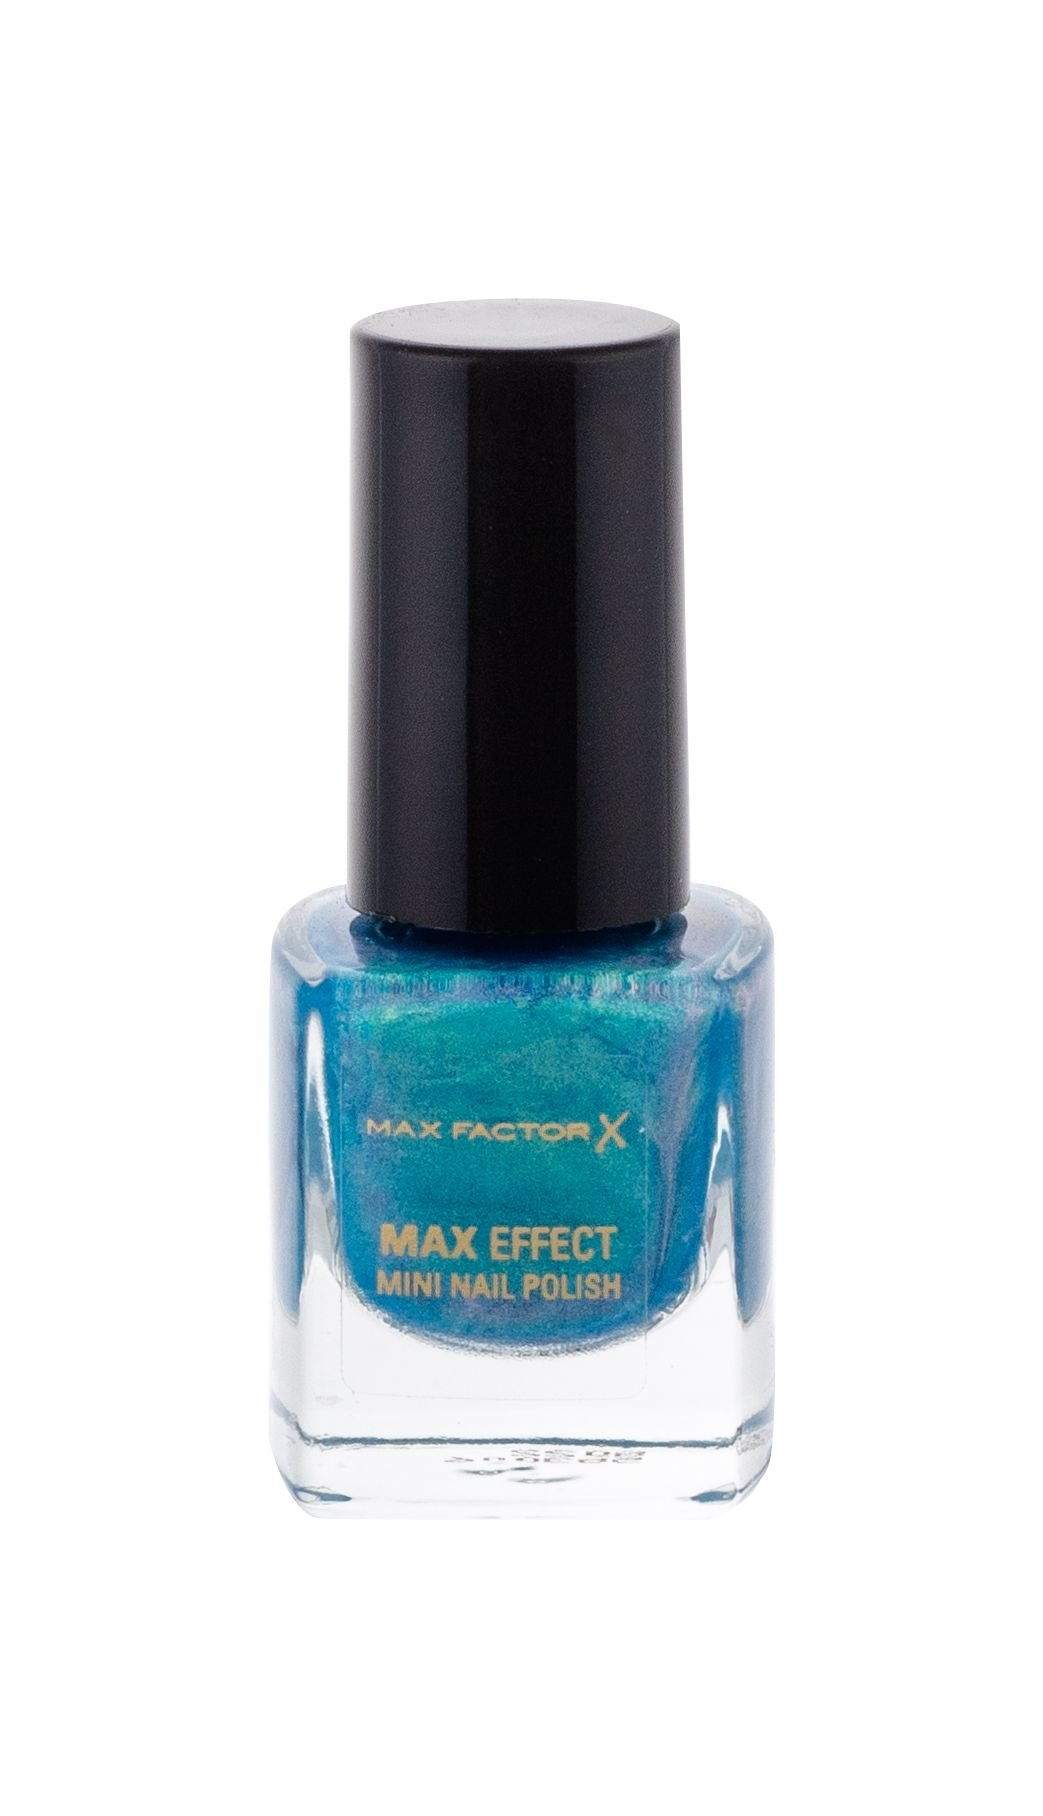 Max Factor Max Effect Nail Polish 4,5ml 14 Dazzling Blue